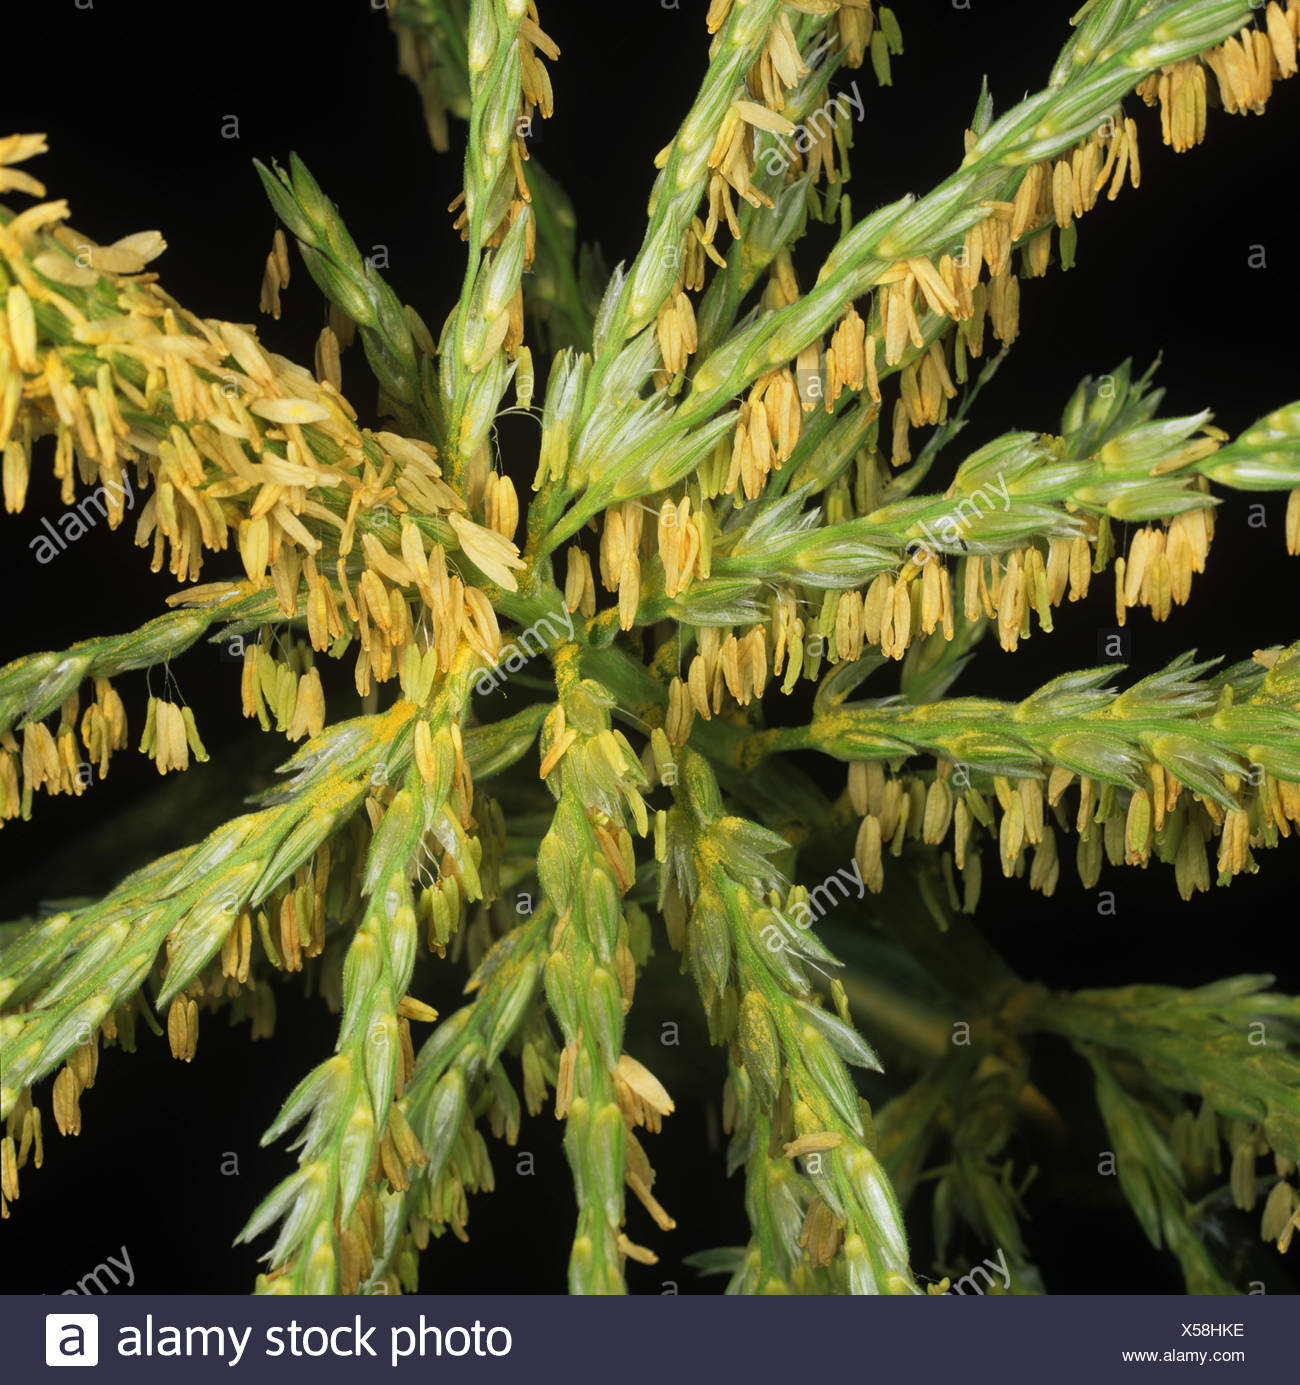 Maize or sweetcorn Zea mays male tassel or inflorescence - Stock Image